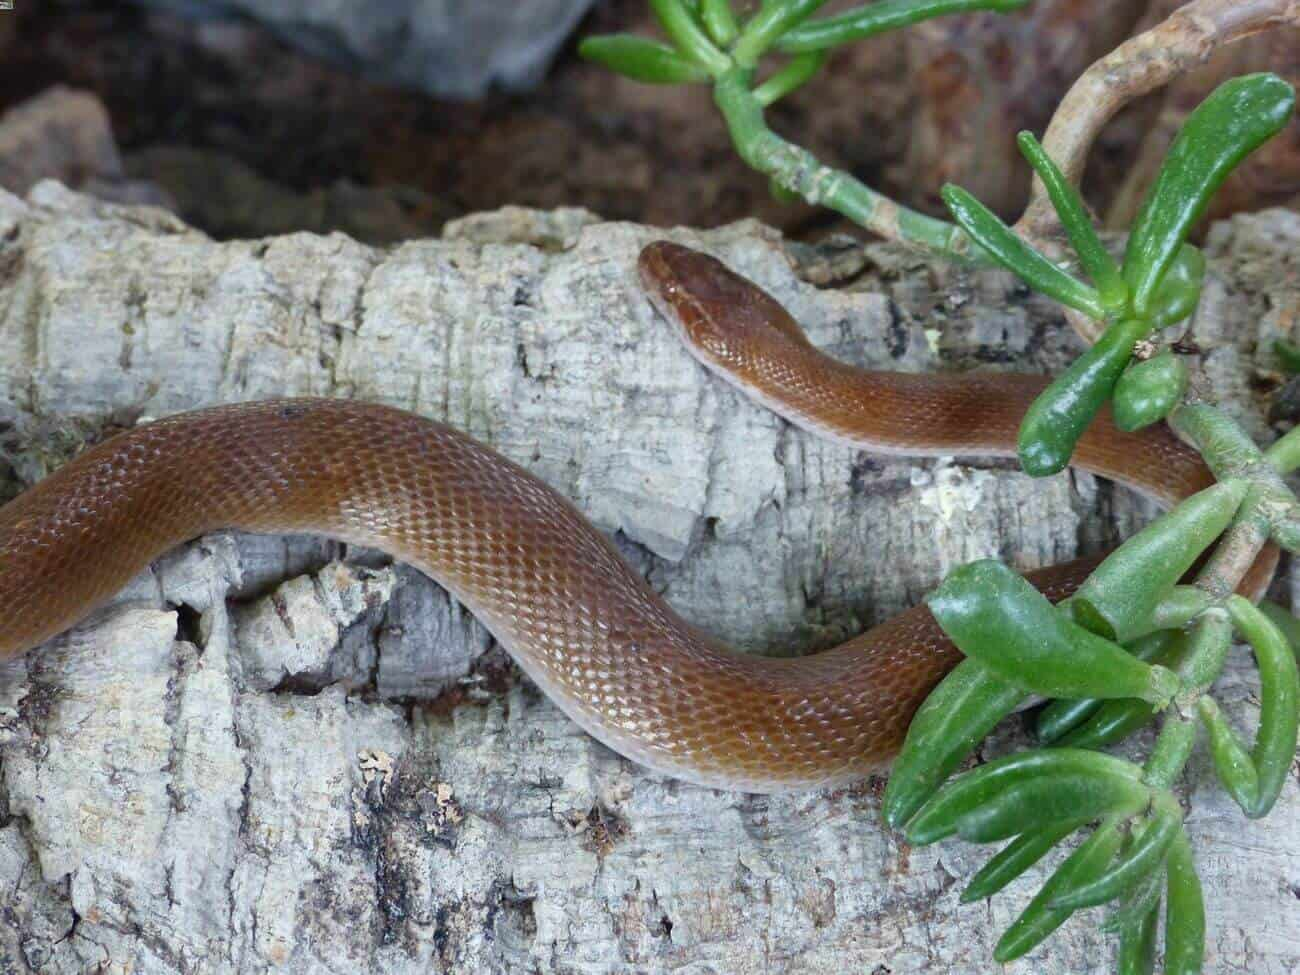 African house snake basking on a rock